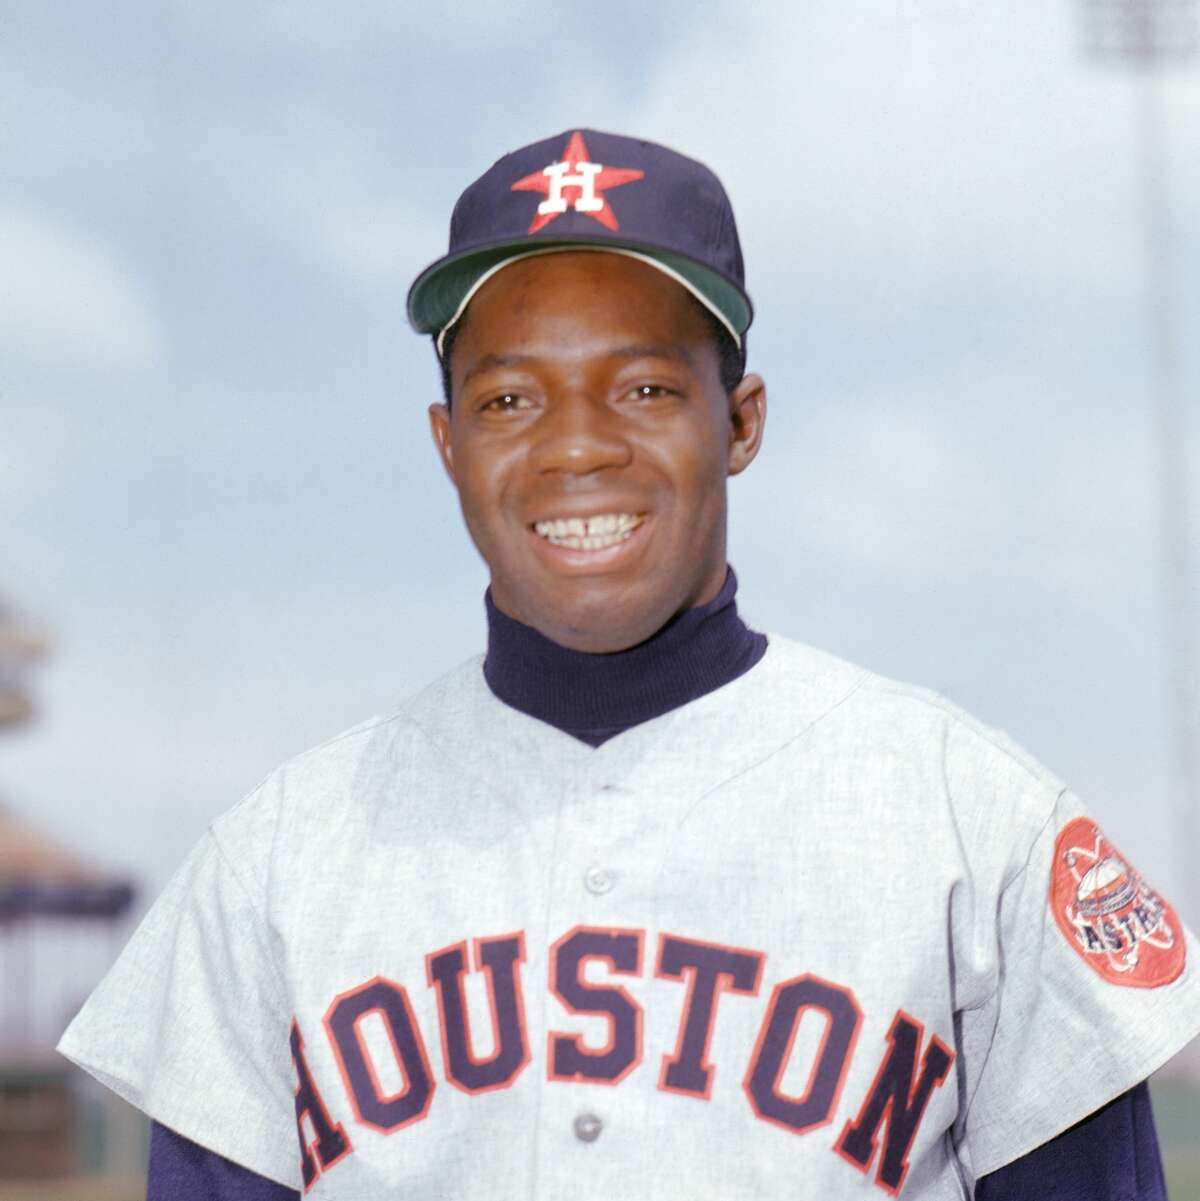 UNDATED: Jimmy Wynn of the Houston Astros poses for a portrait circa 1965 - 1973. (Photo by Louis Requena/MLB Photos via Getty Images)